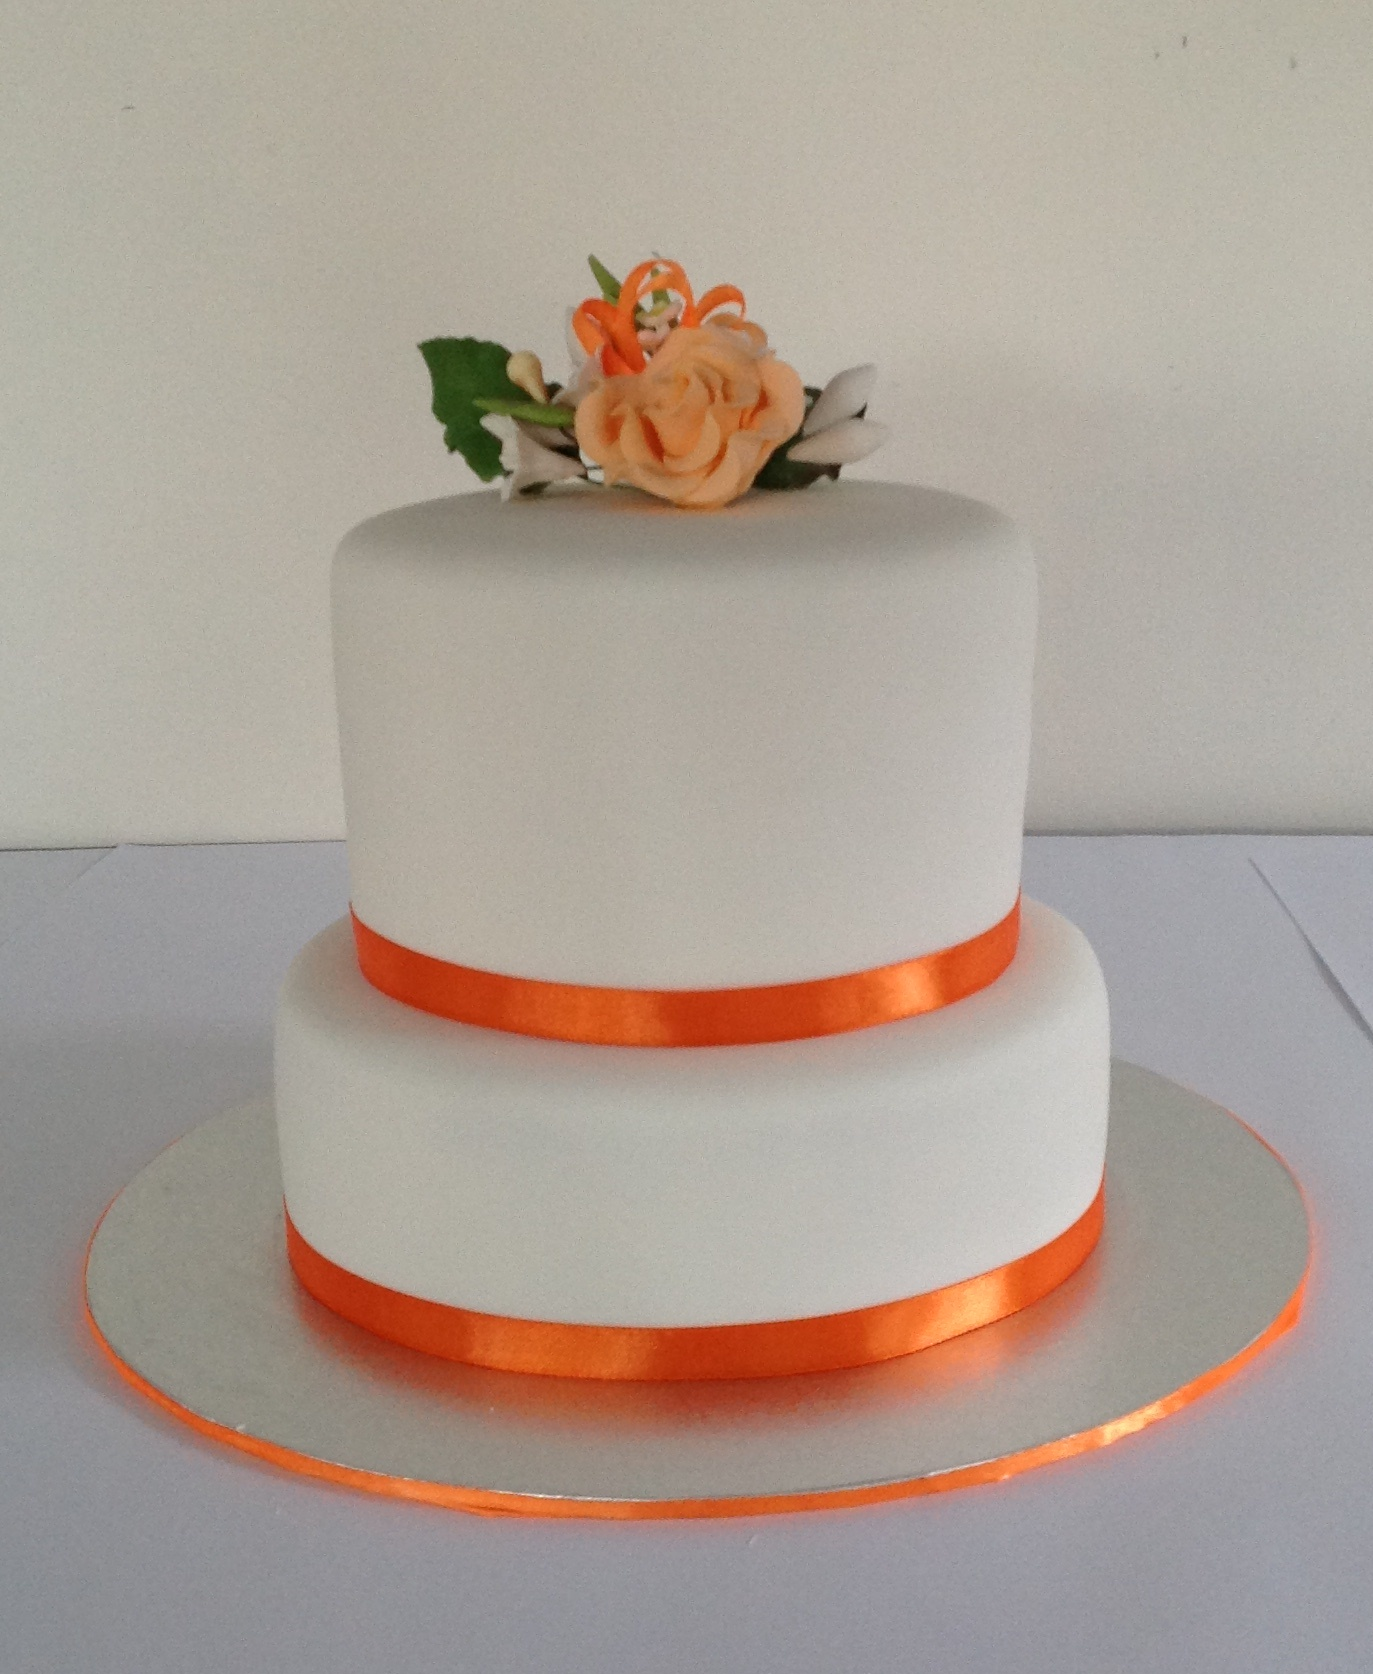 Two Teir Wedding Cake